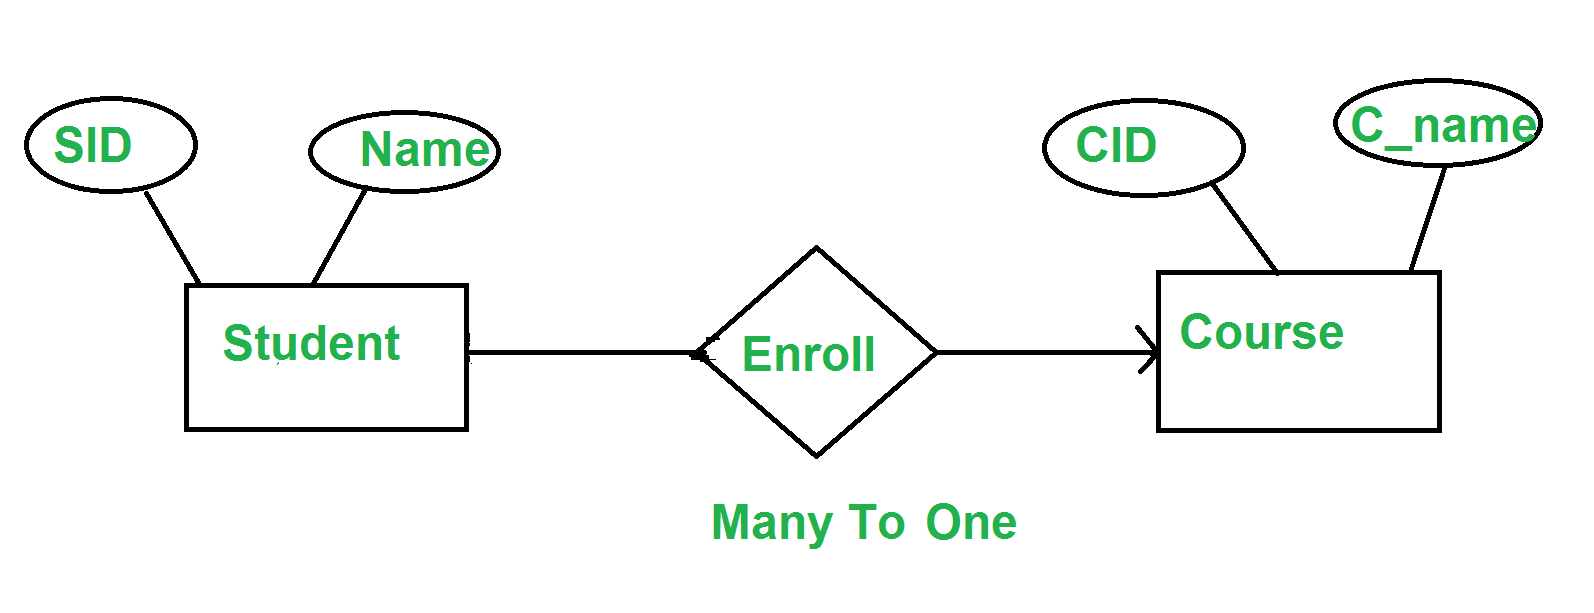 Minimization Of Er Diagrams - Geeksforgeeks intended for One To One Er Diagram